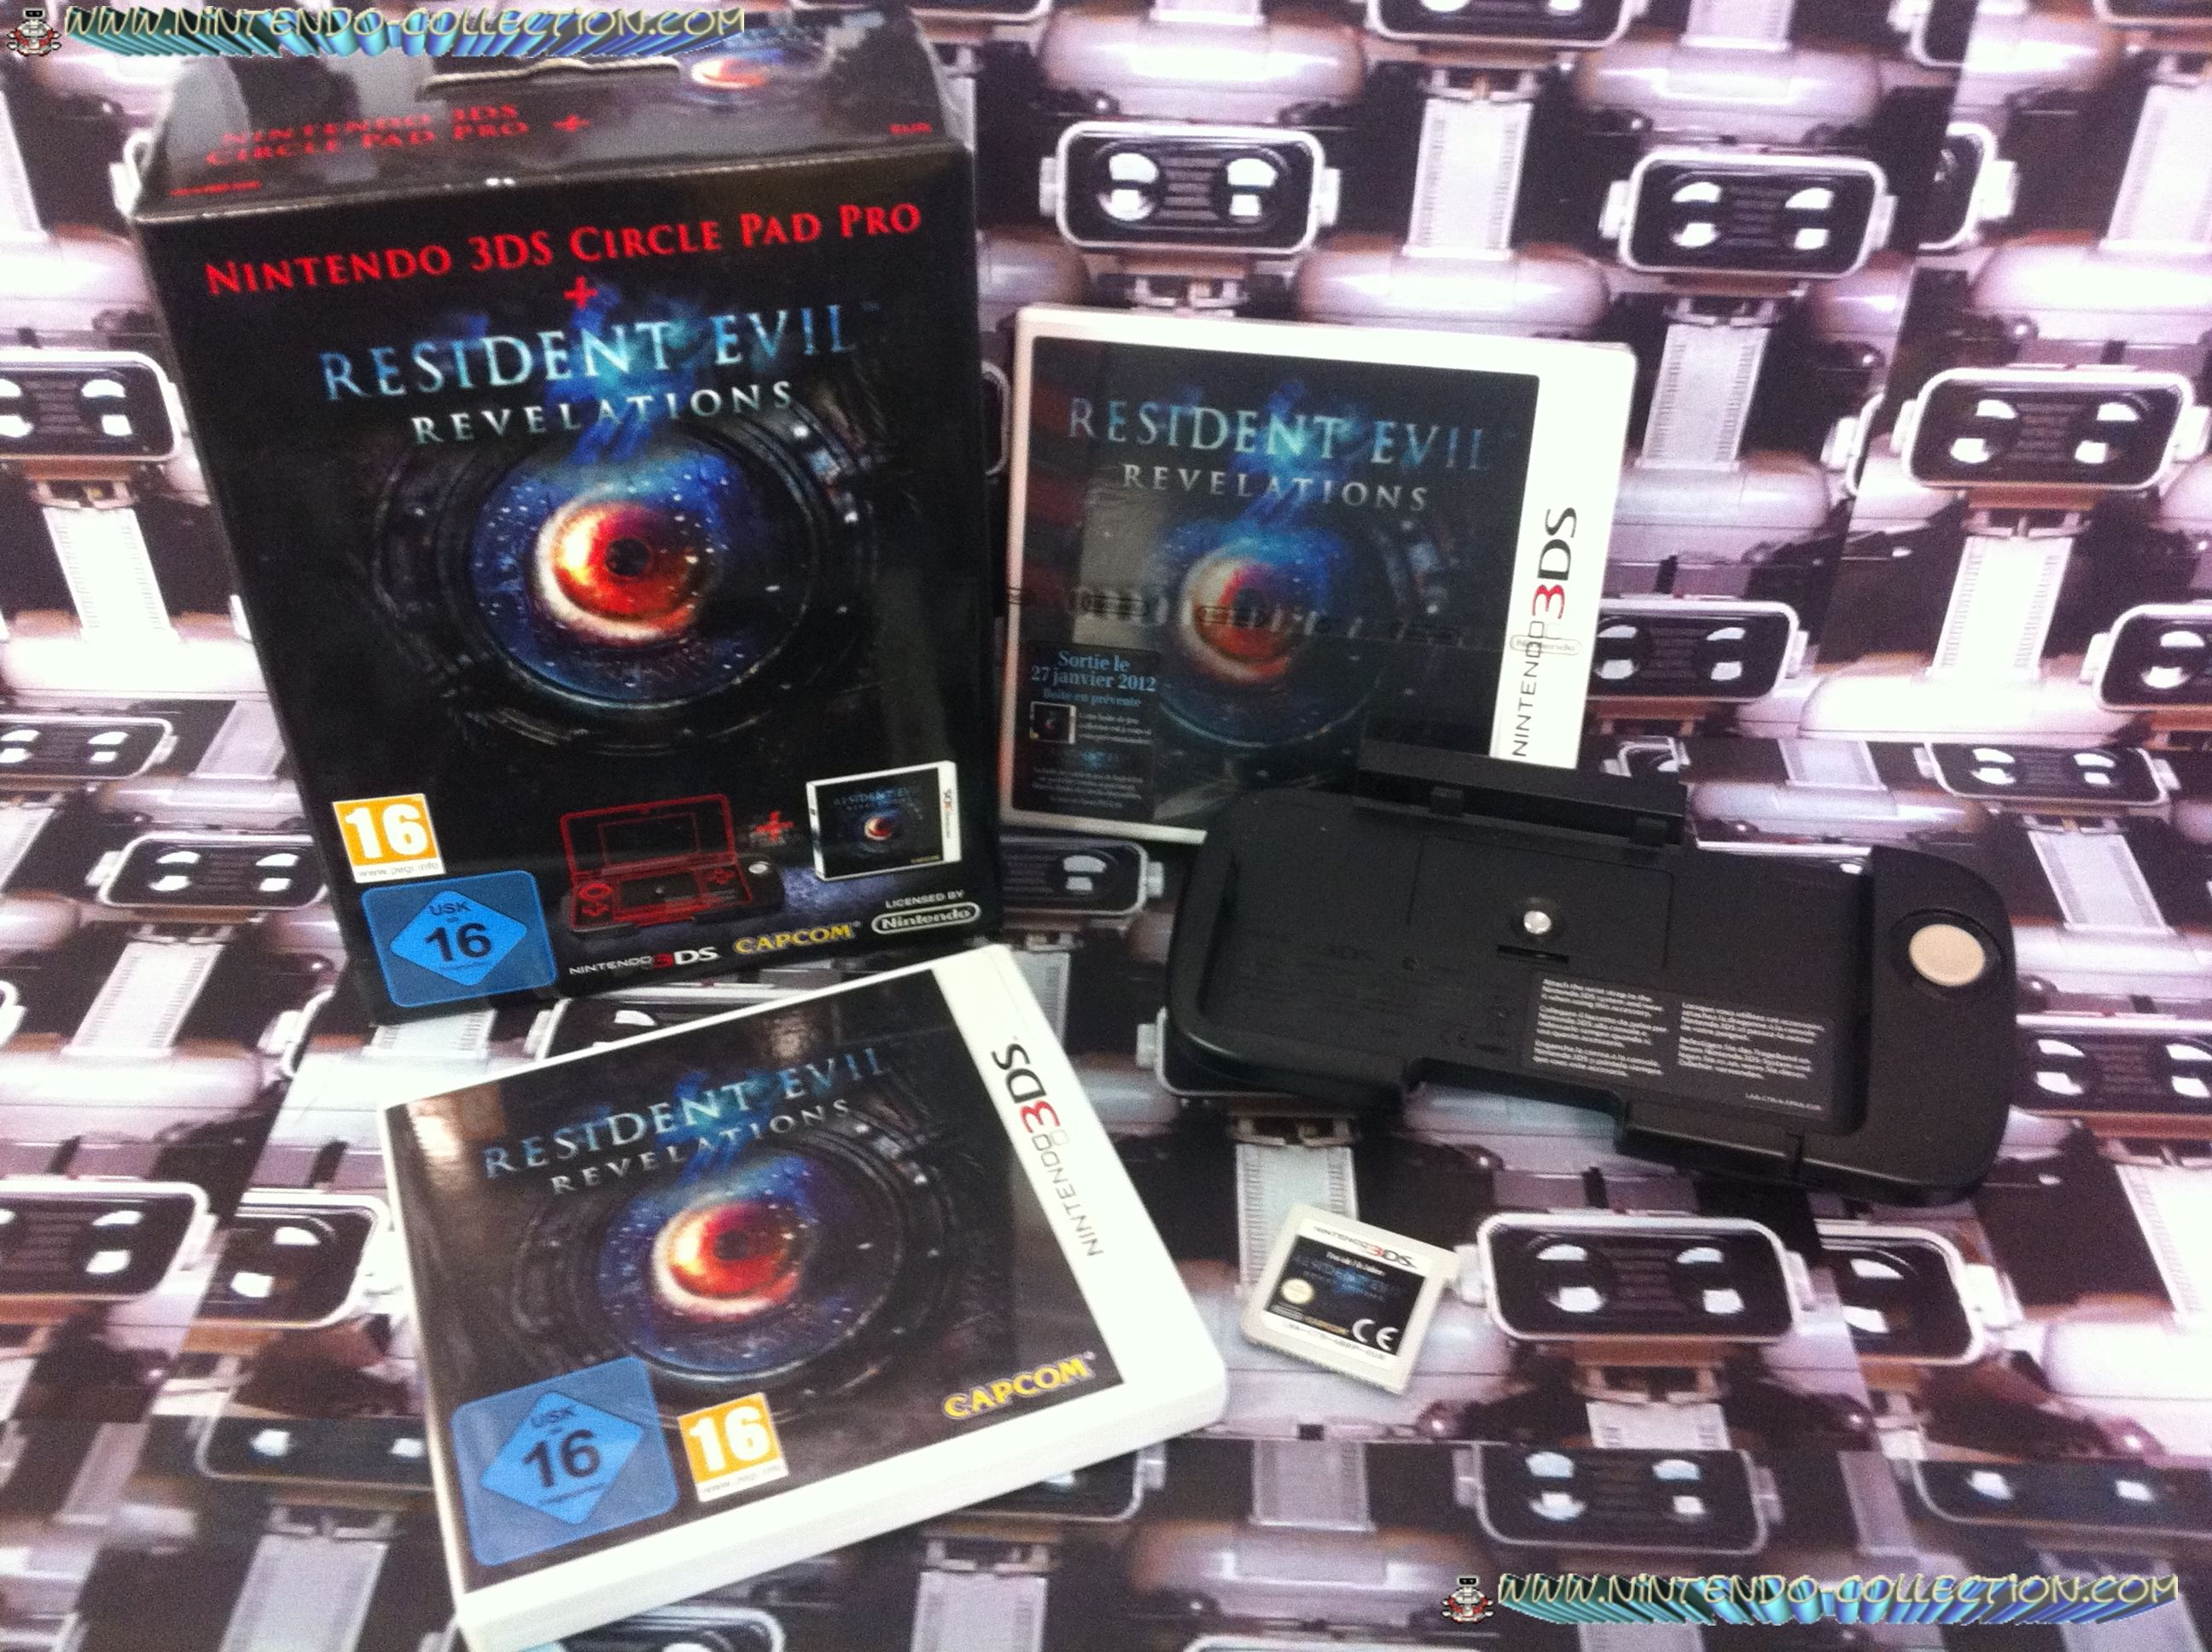 www.nintendo-collection.com - Pack Resident Evil Revelations + Nintendo 3DS Circle Pad Pro - Nintend